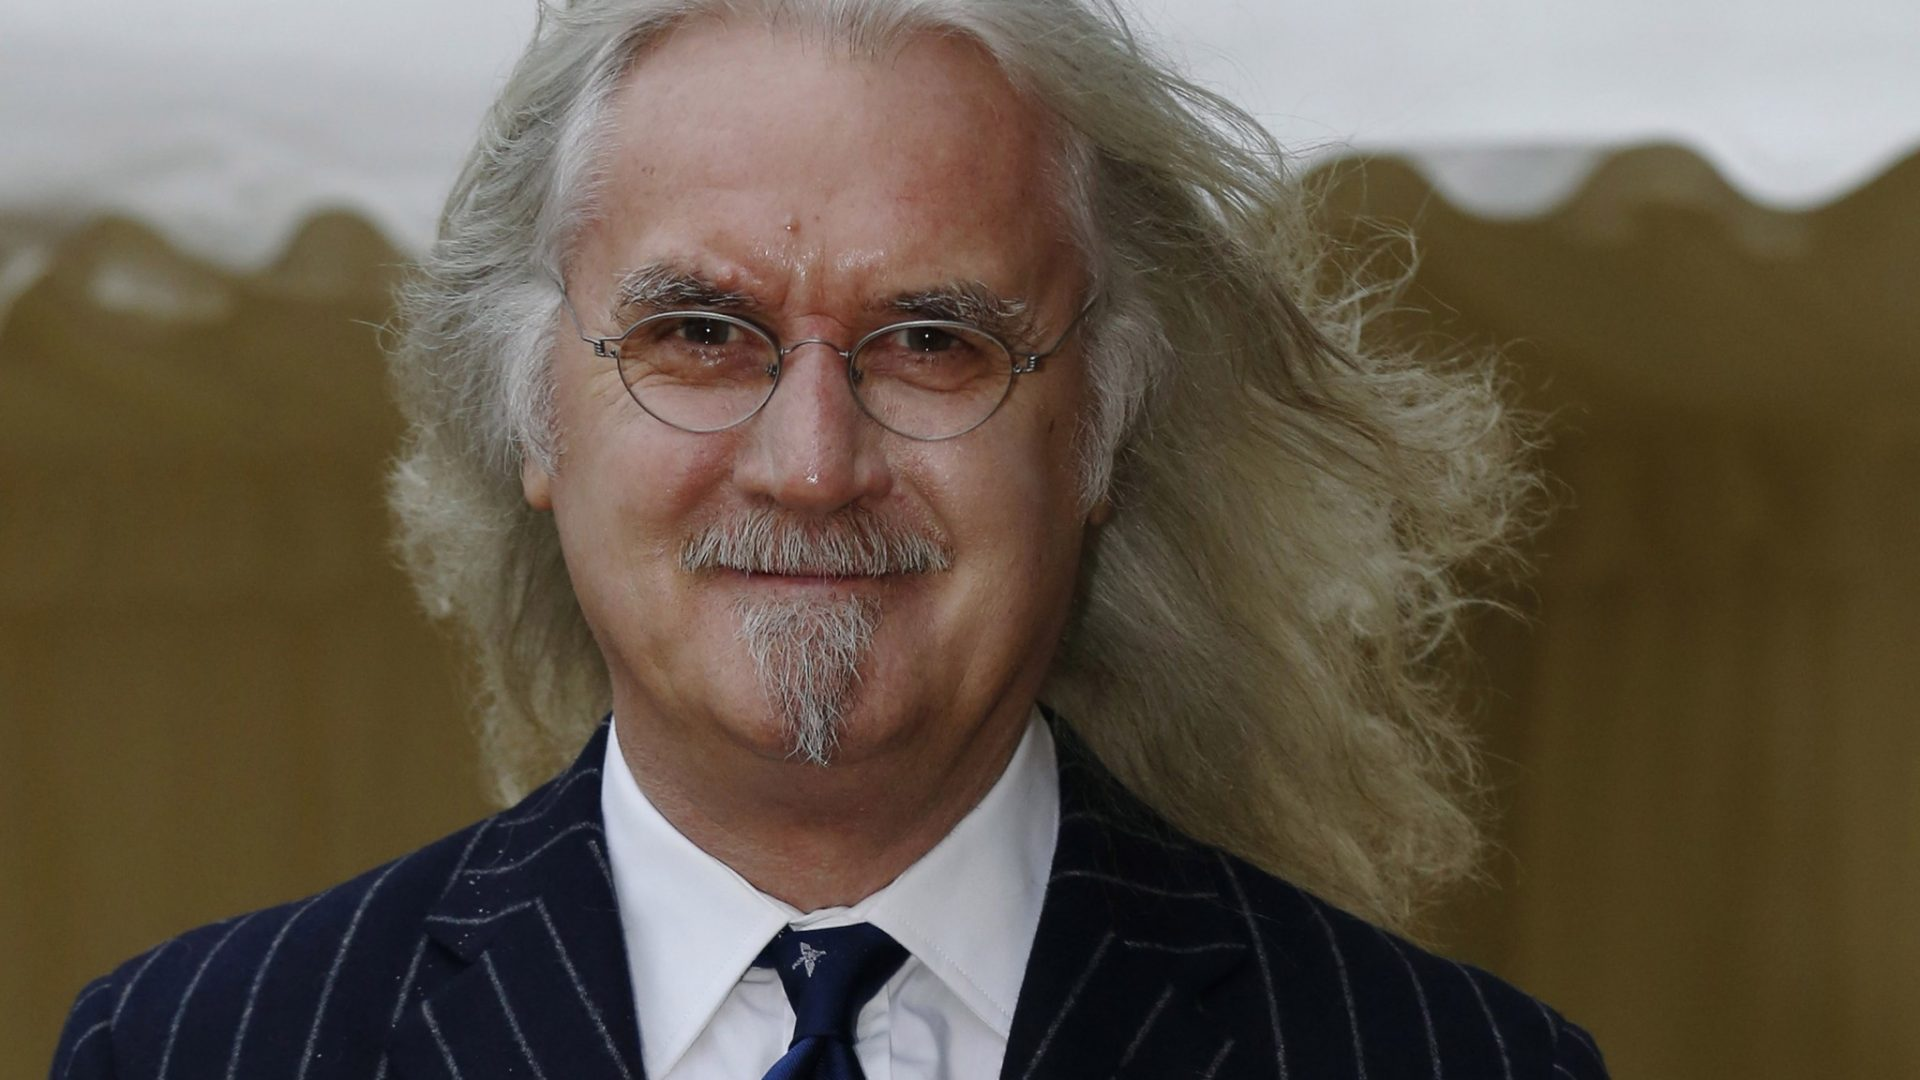 Cancer-struck comedian Billy Connolly is playing live at Hammersmith Apollo